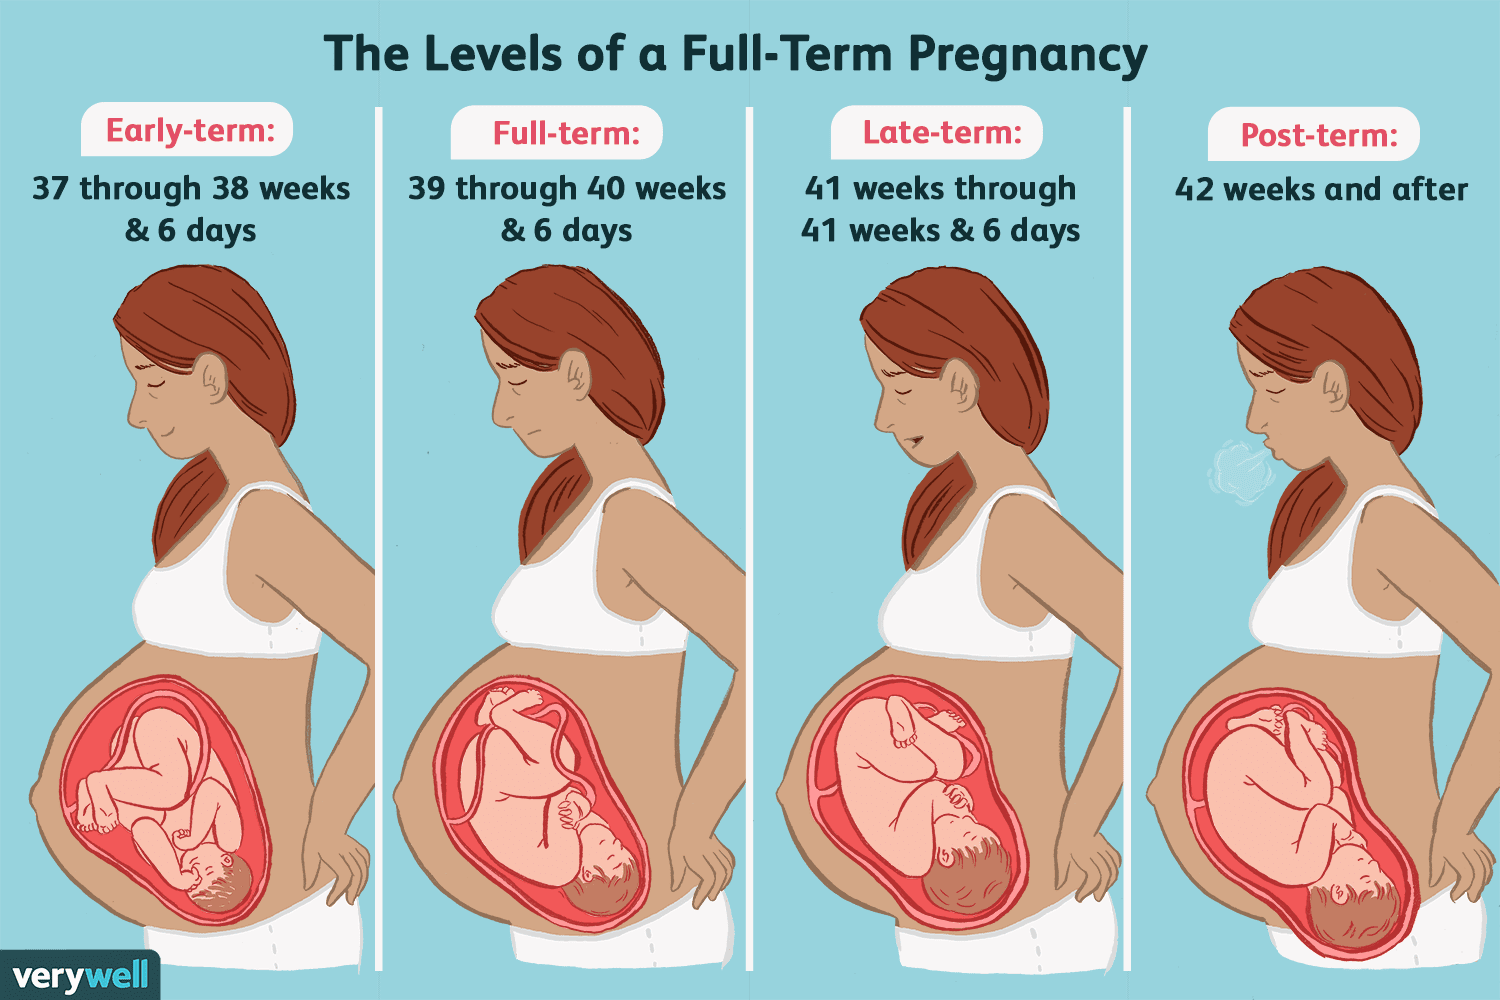 early-term, full-term, late-term, and post-term pregnancy